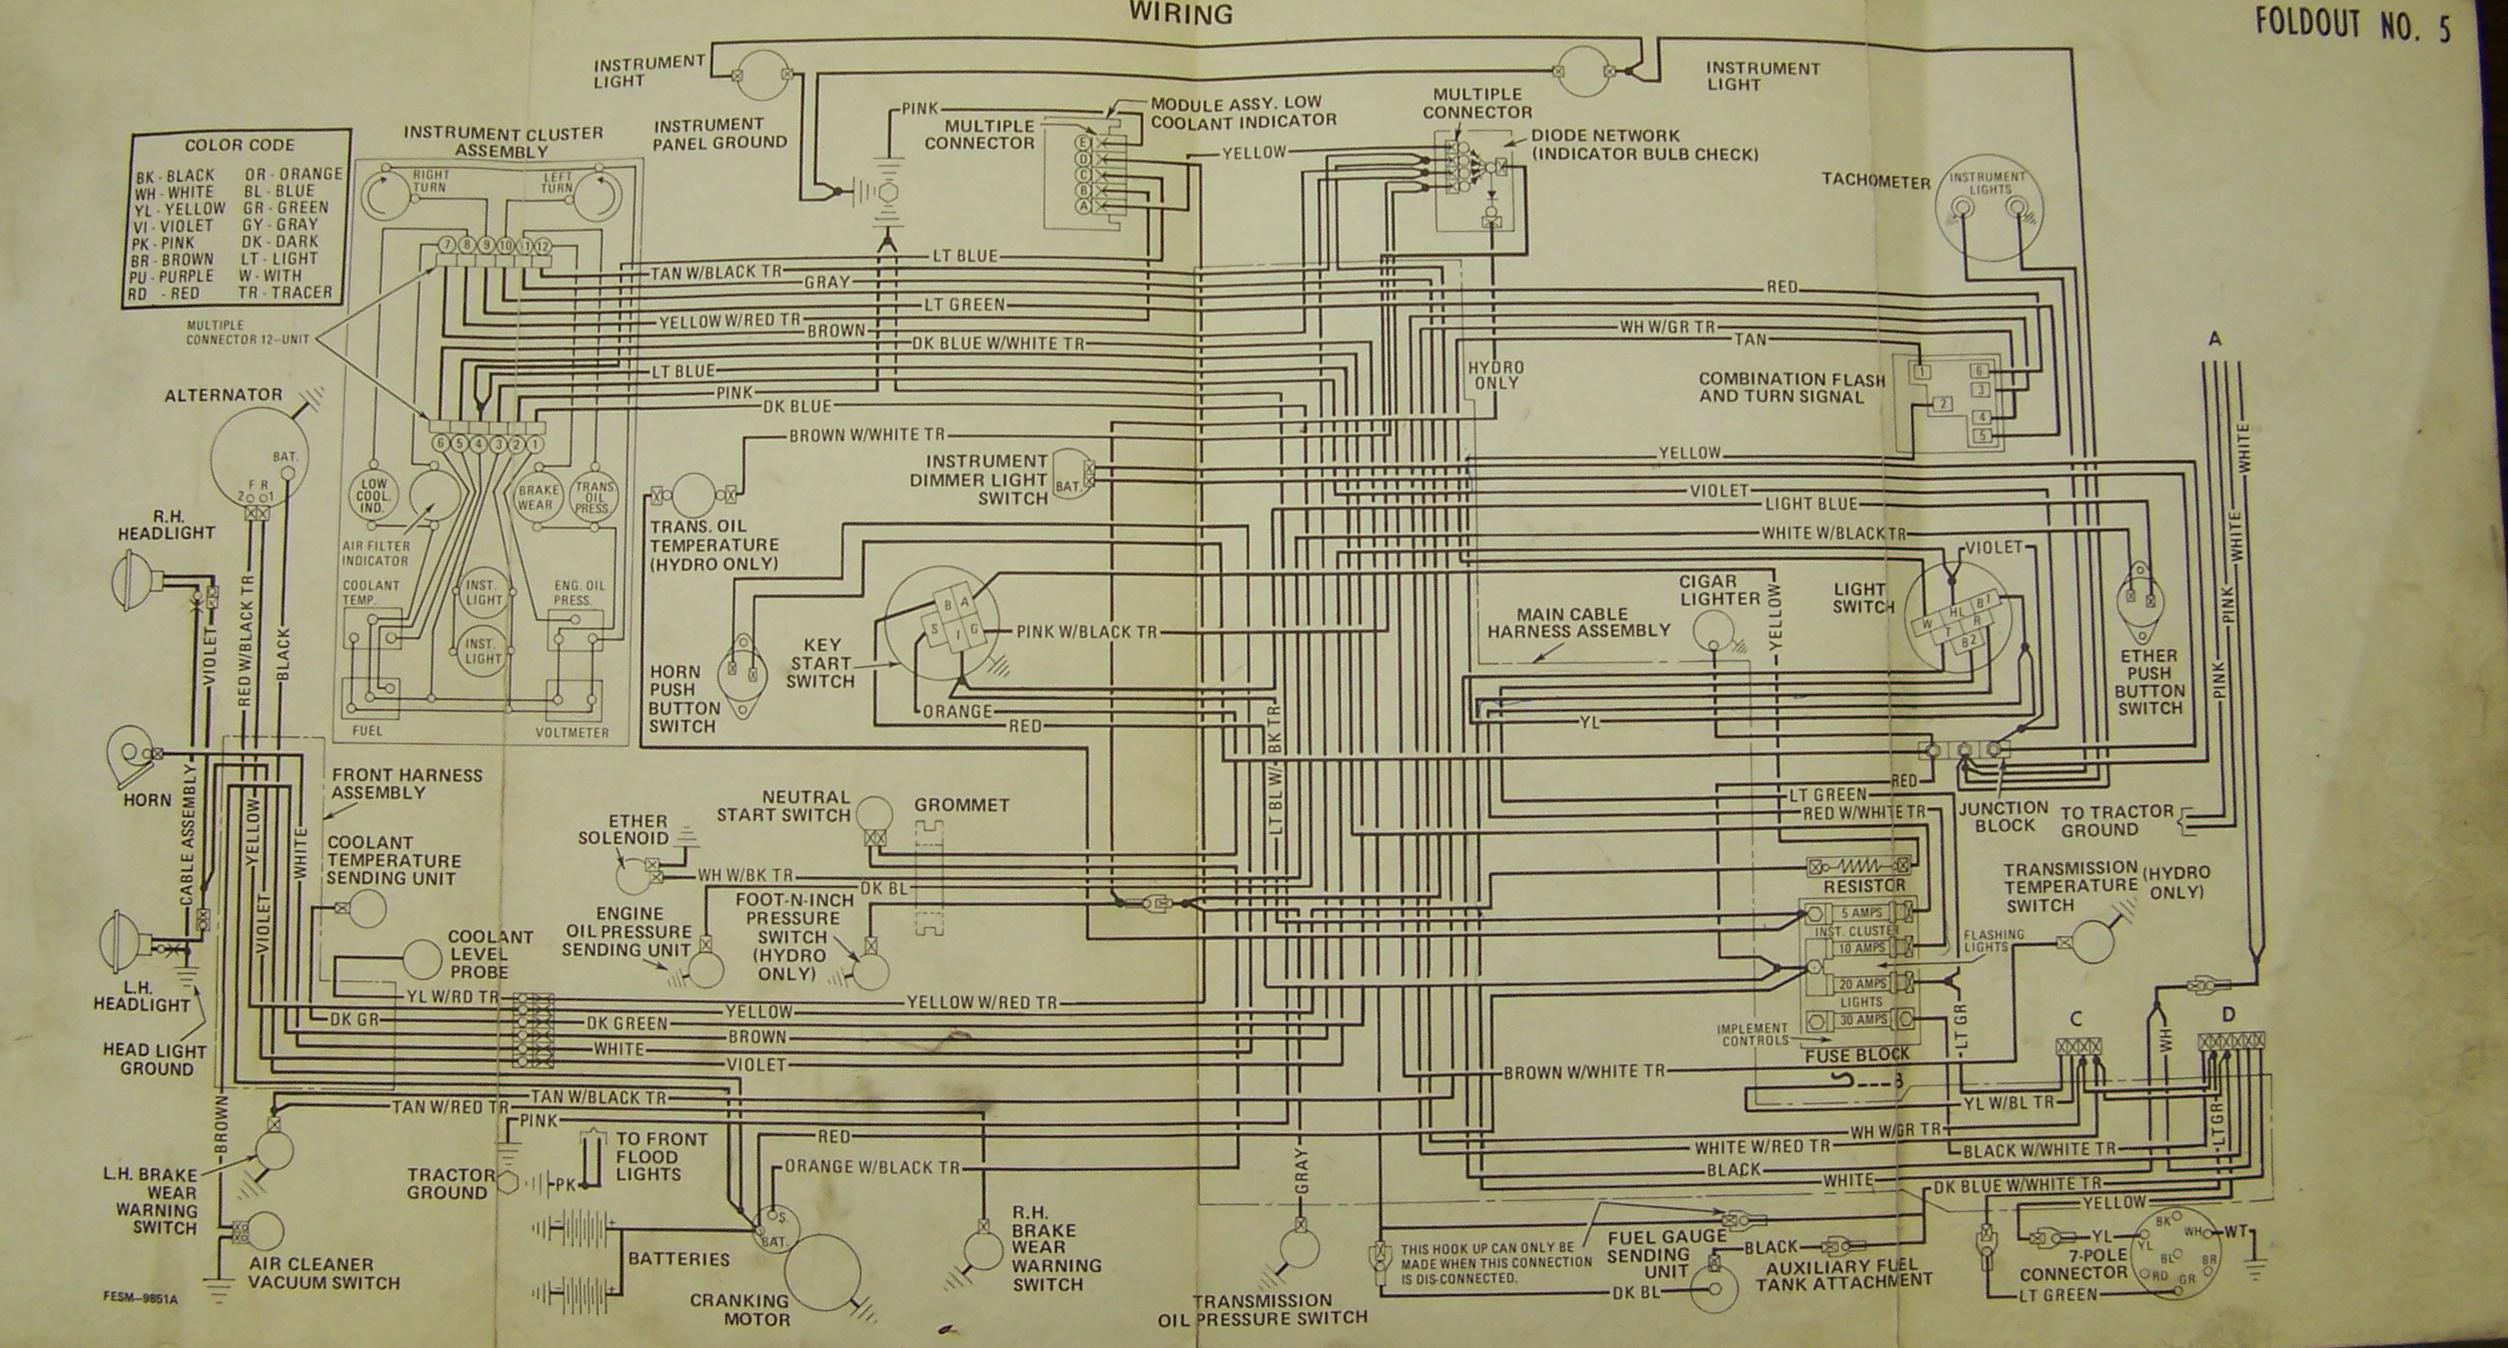 140 Farmall Wiring Schematic Custom Diagram Ct 90 Private Sharing About Carter Gruenewald Co Inc Ih Tractor Electrical Rh Cngco Com 12 Volt